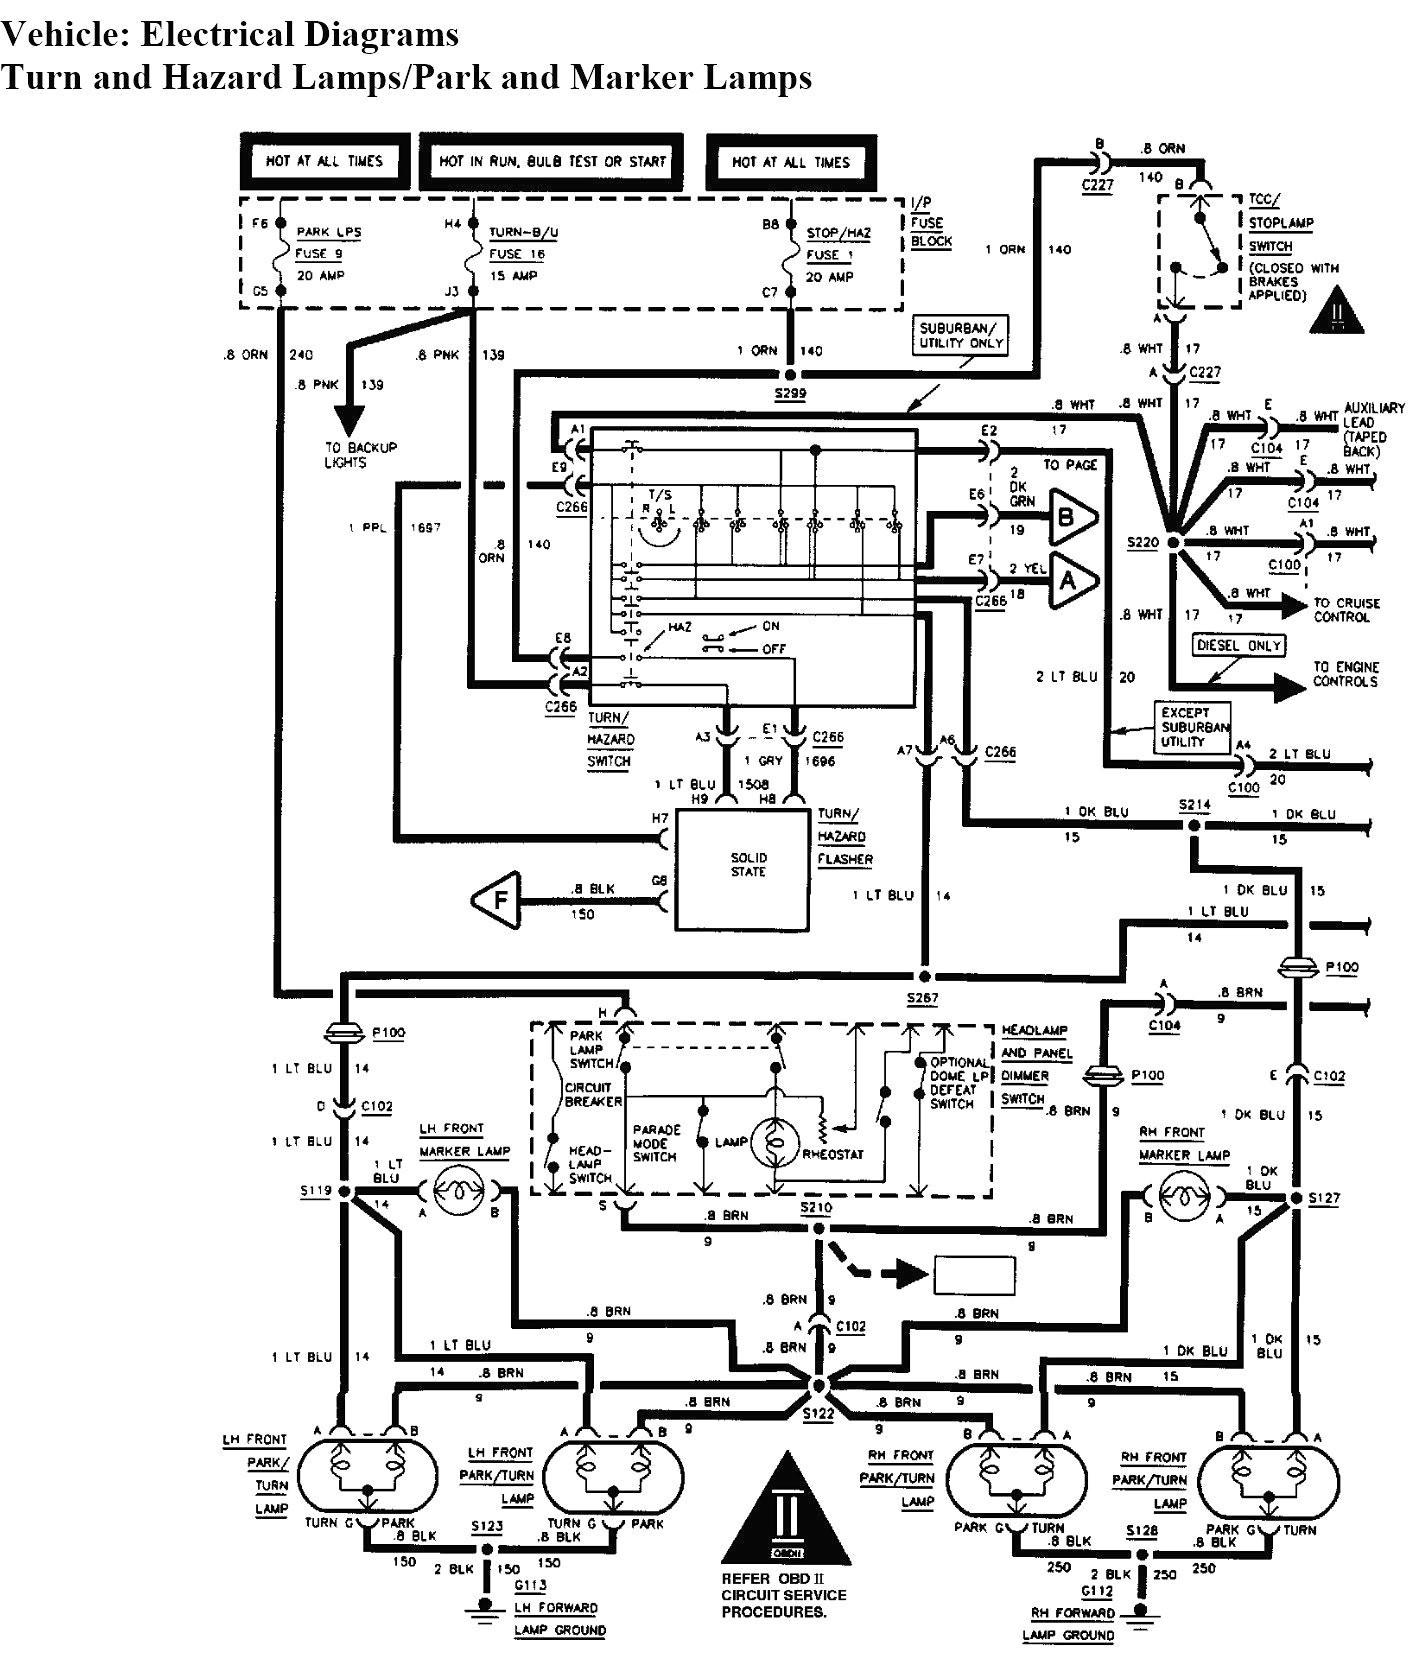 hight resolution of 1998 chevy truck brake light wiring diagram 95 s10 brake light wiring diagram brainglue 1995 chevy truck in